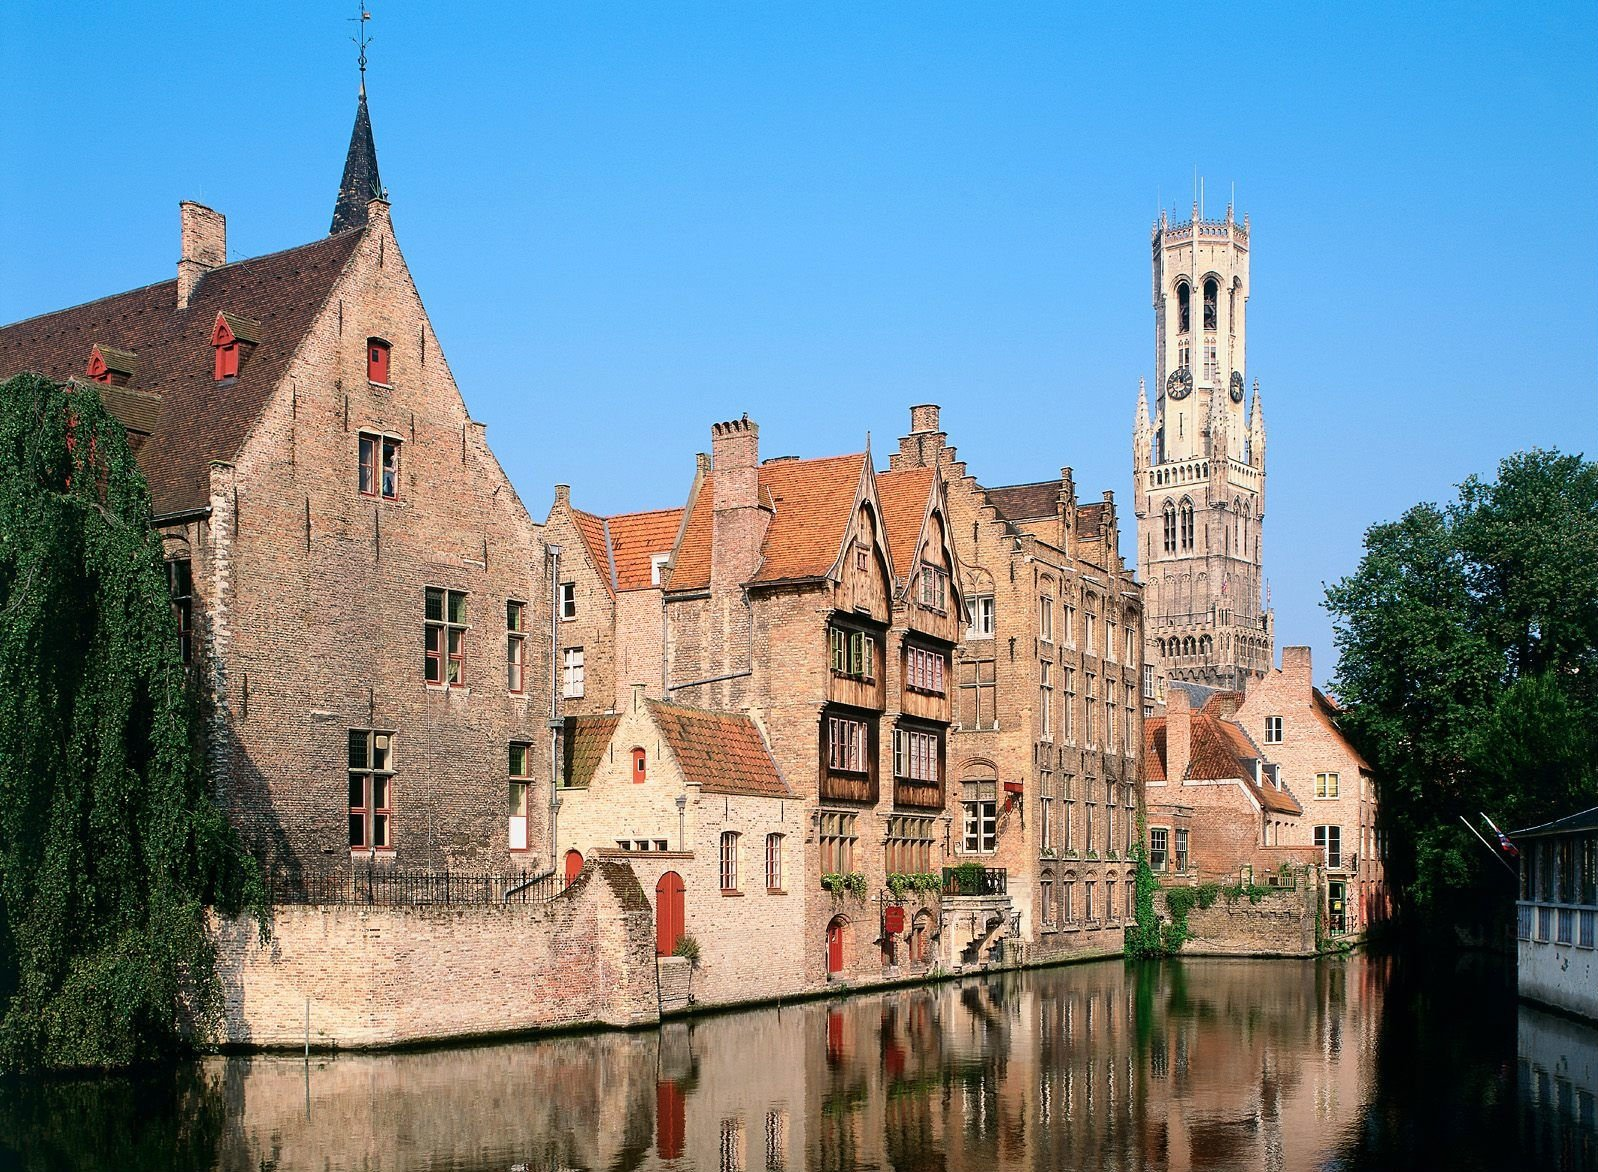 Brugge Belgium Wallpaper and Background Image 1598x1172 ID 1598x1172